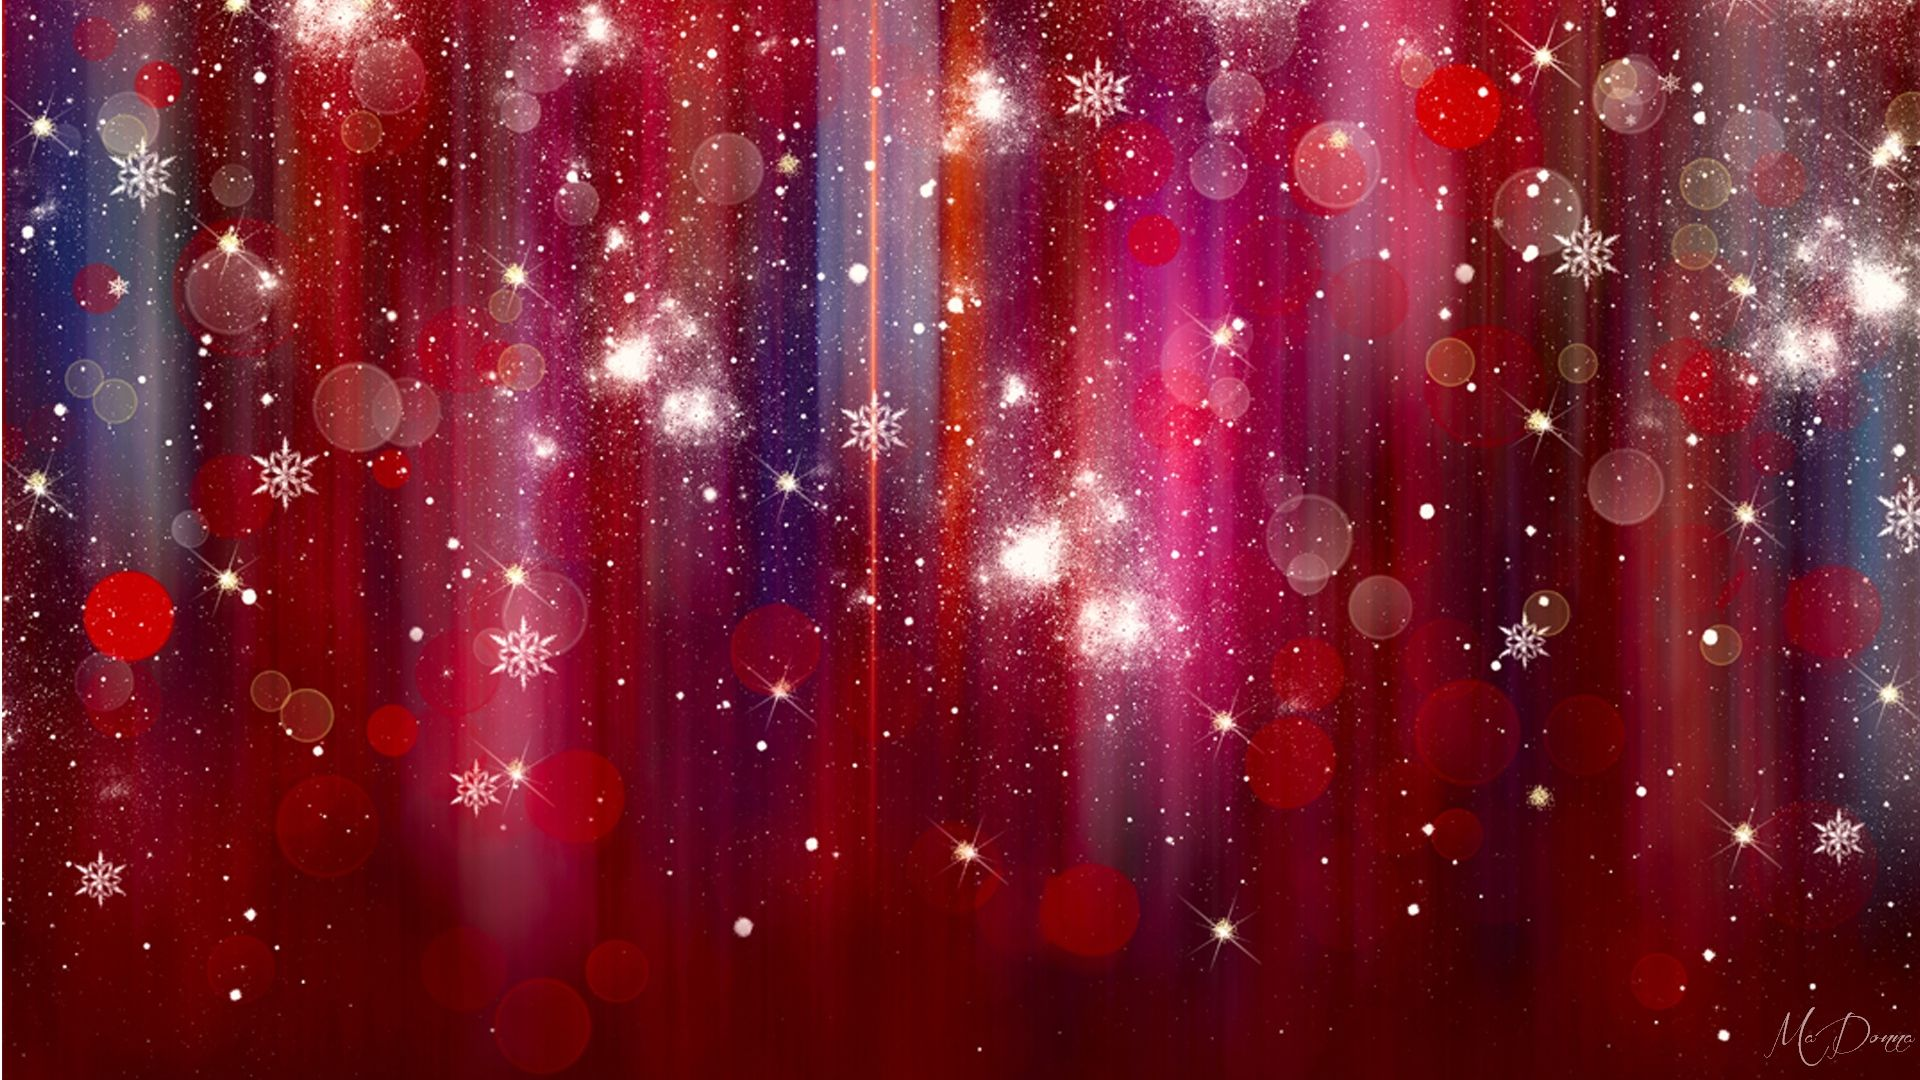 Red White and Blue Glitter Wallpapers - Top Free Red White ...